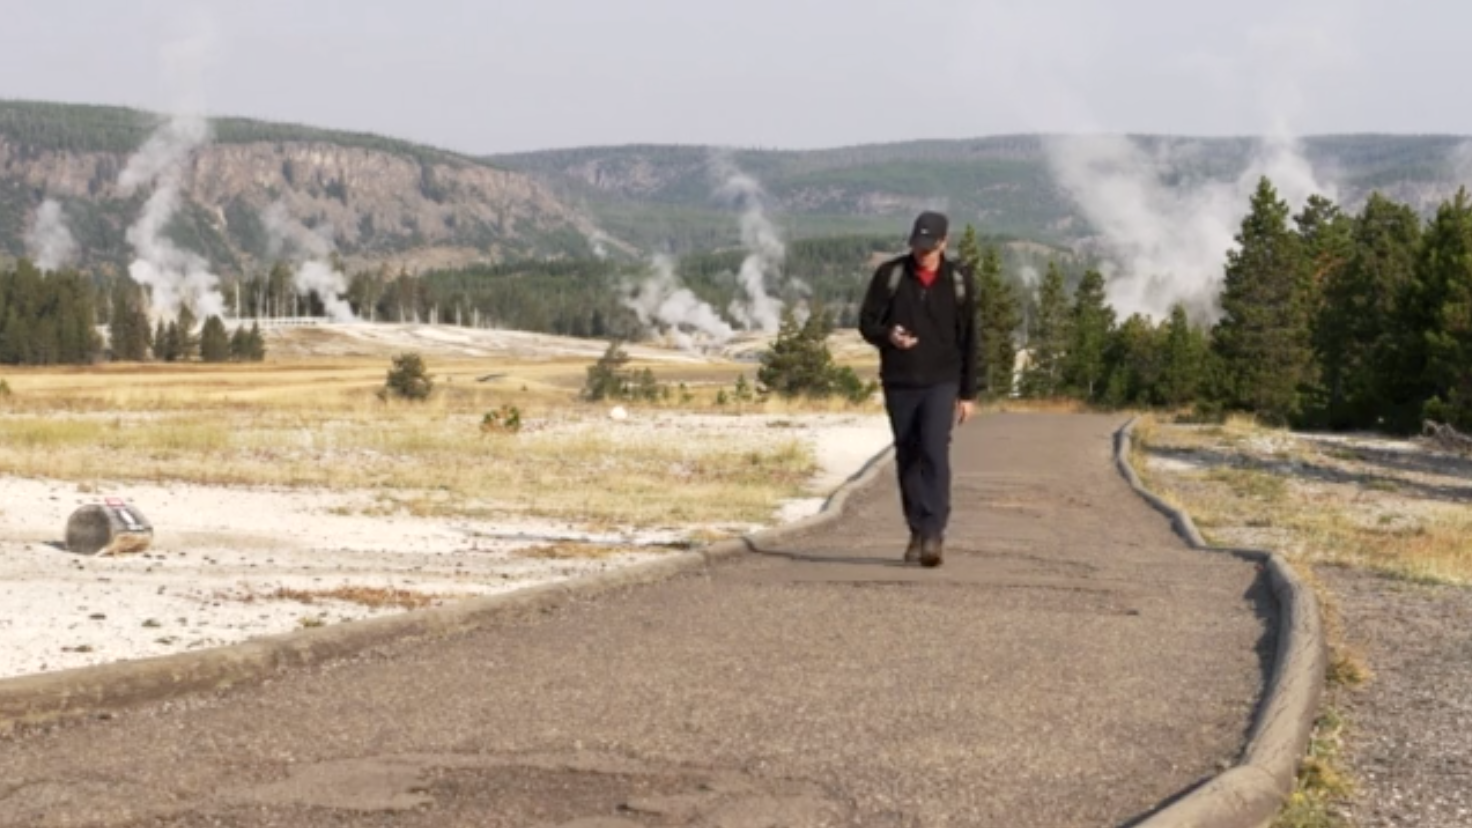 New Pavement Made From Tires Will Save Old Faithful's Groundwater